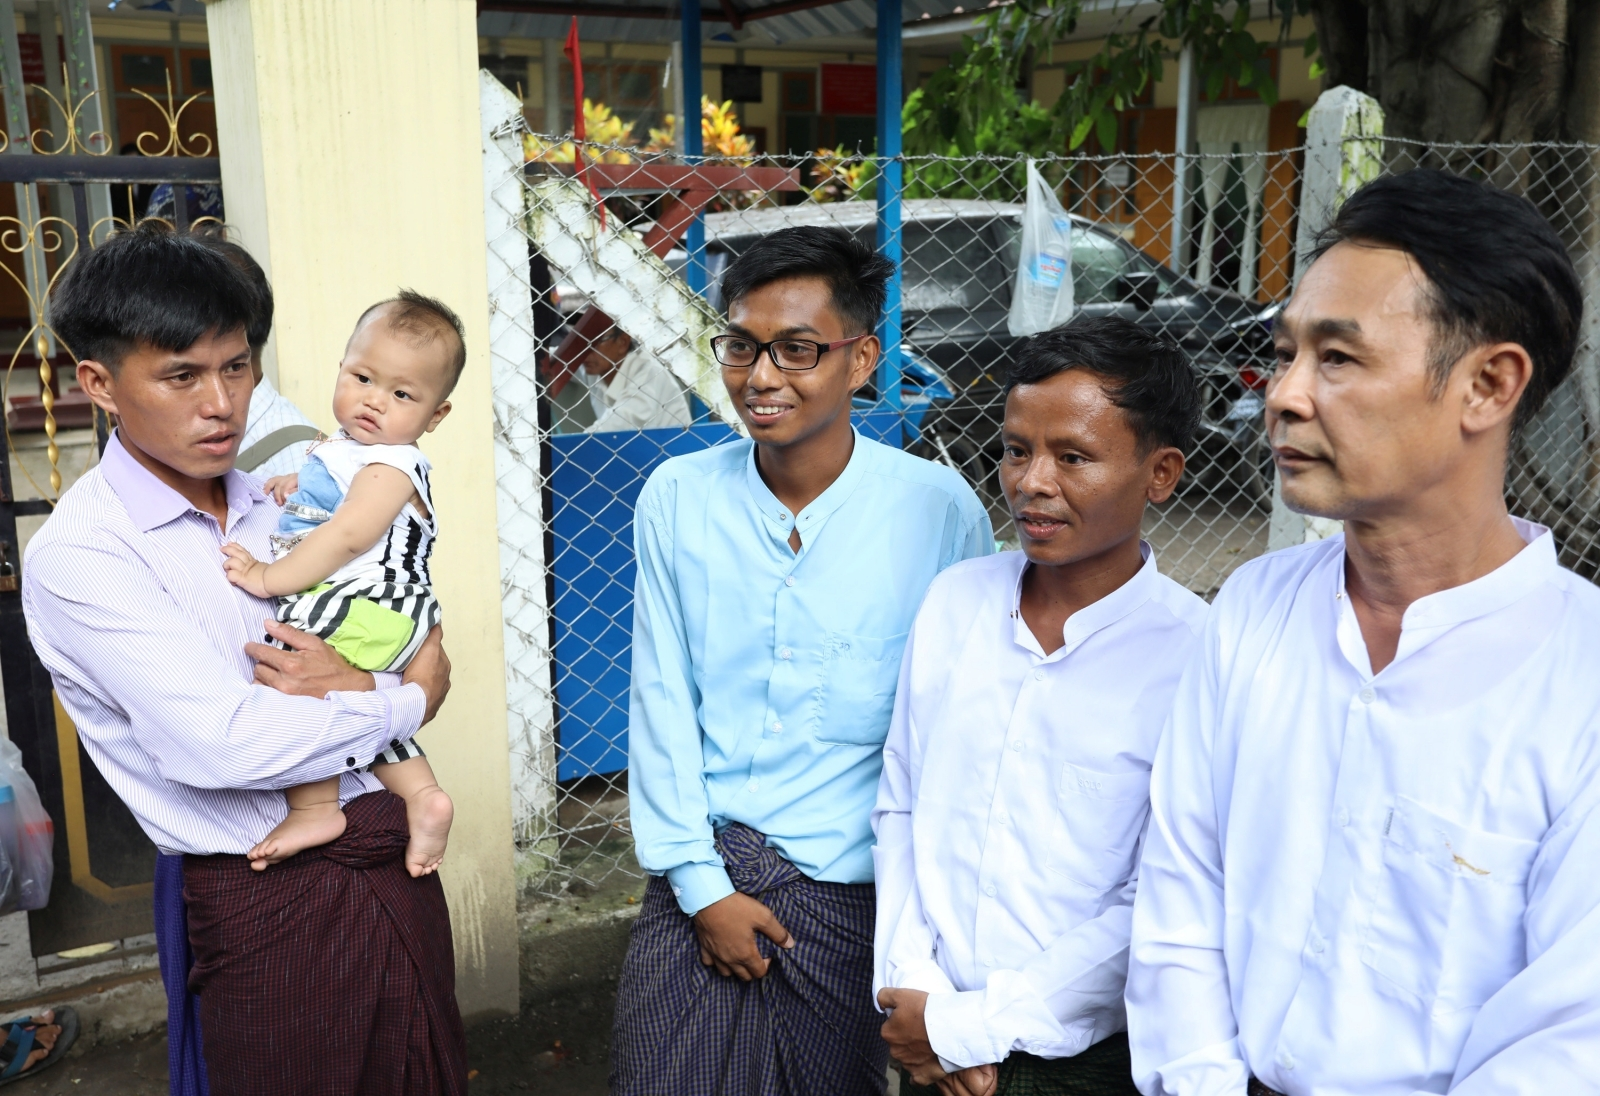 Myanmar journalists released